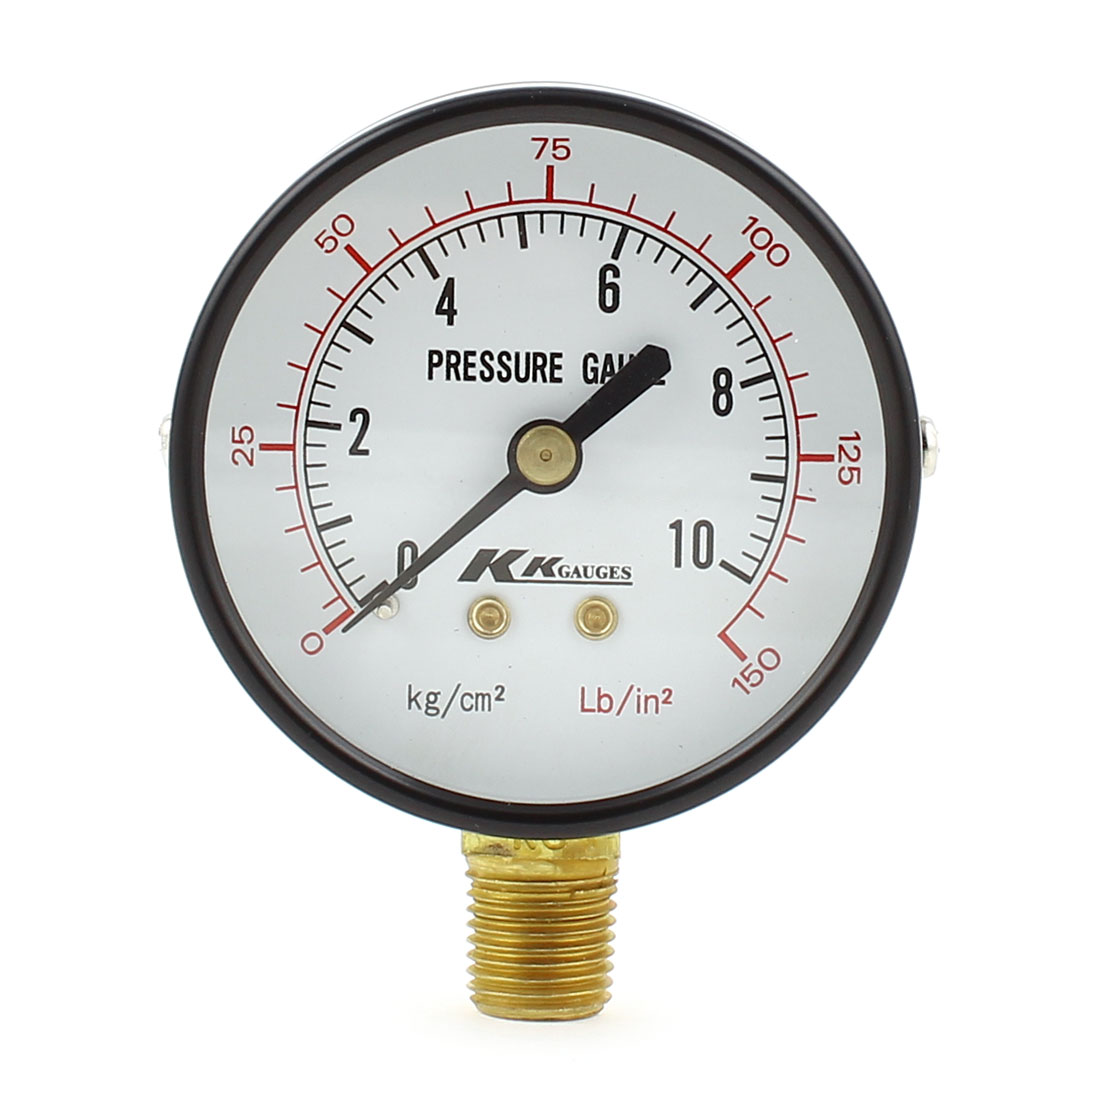 Buy 0 150psi horizontal mount water air pressure gauge 13mm thread buy 0 150psi horizontal mount water air pressure gauge 13mm thread diameter 14 pt in cheap price on mibaba publicscrutiny Image collections